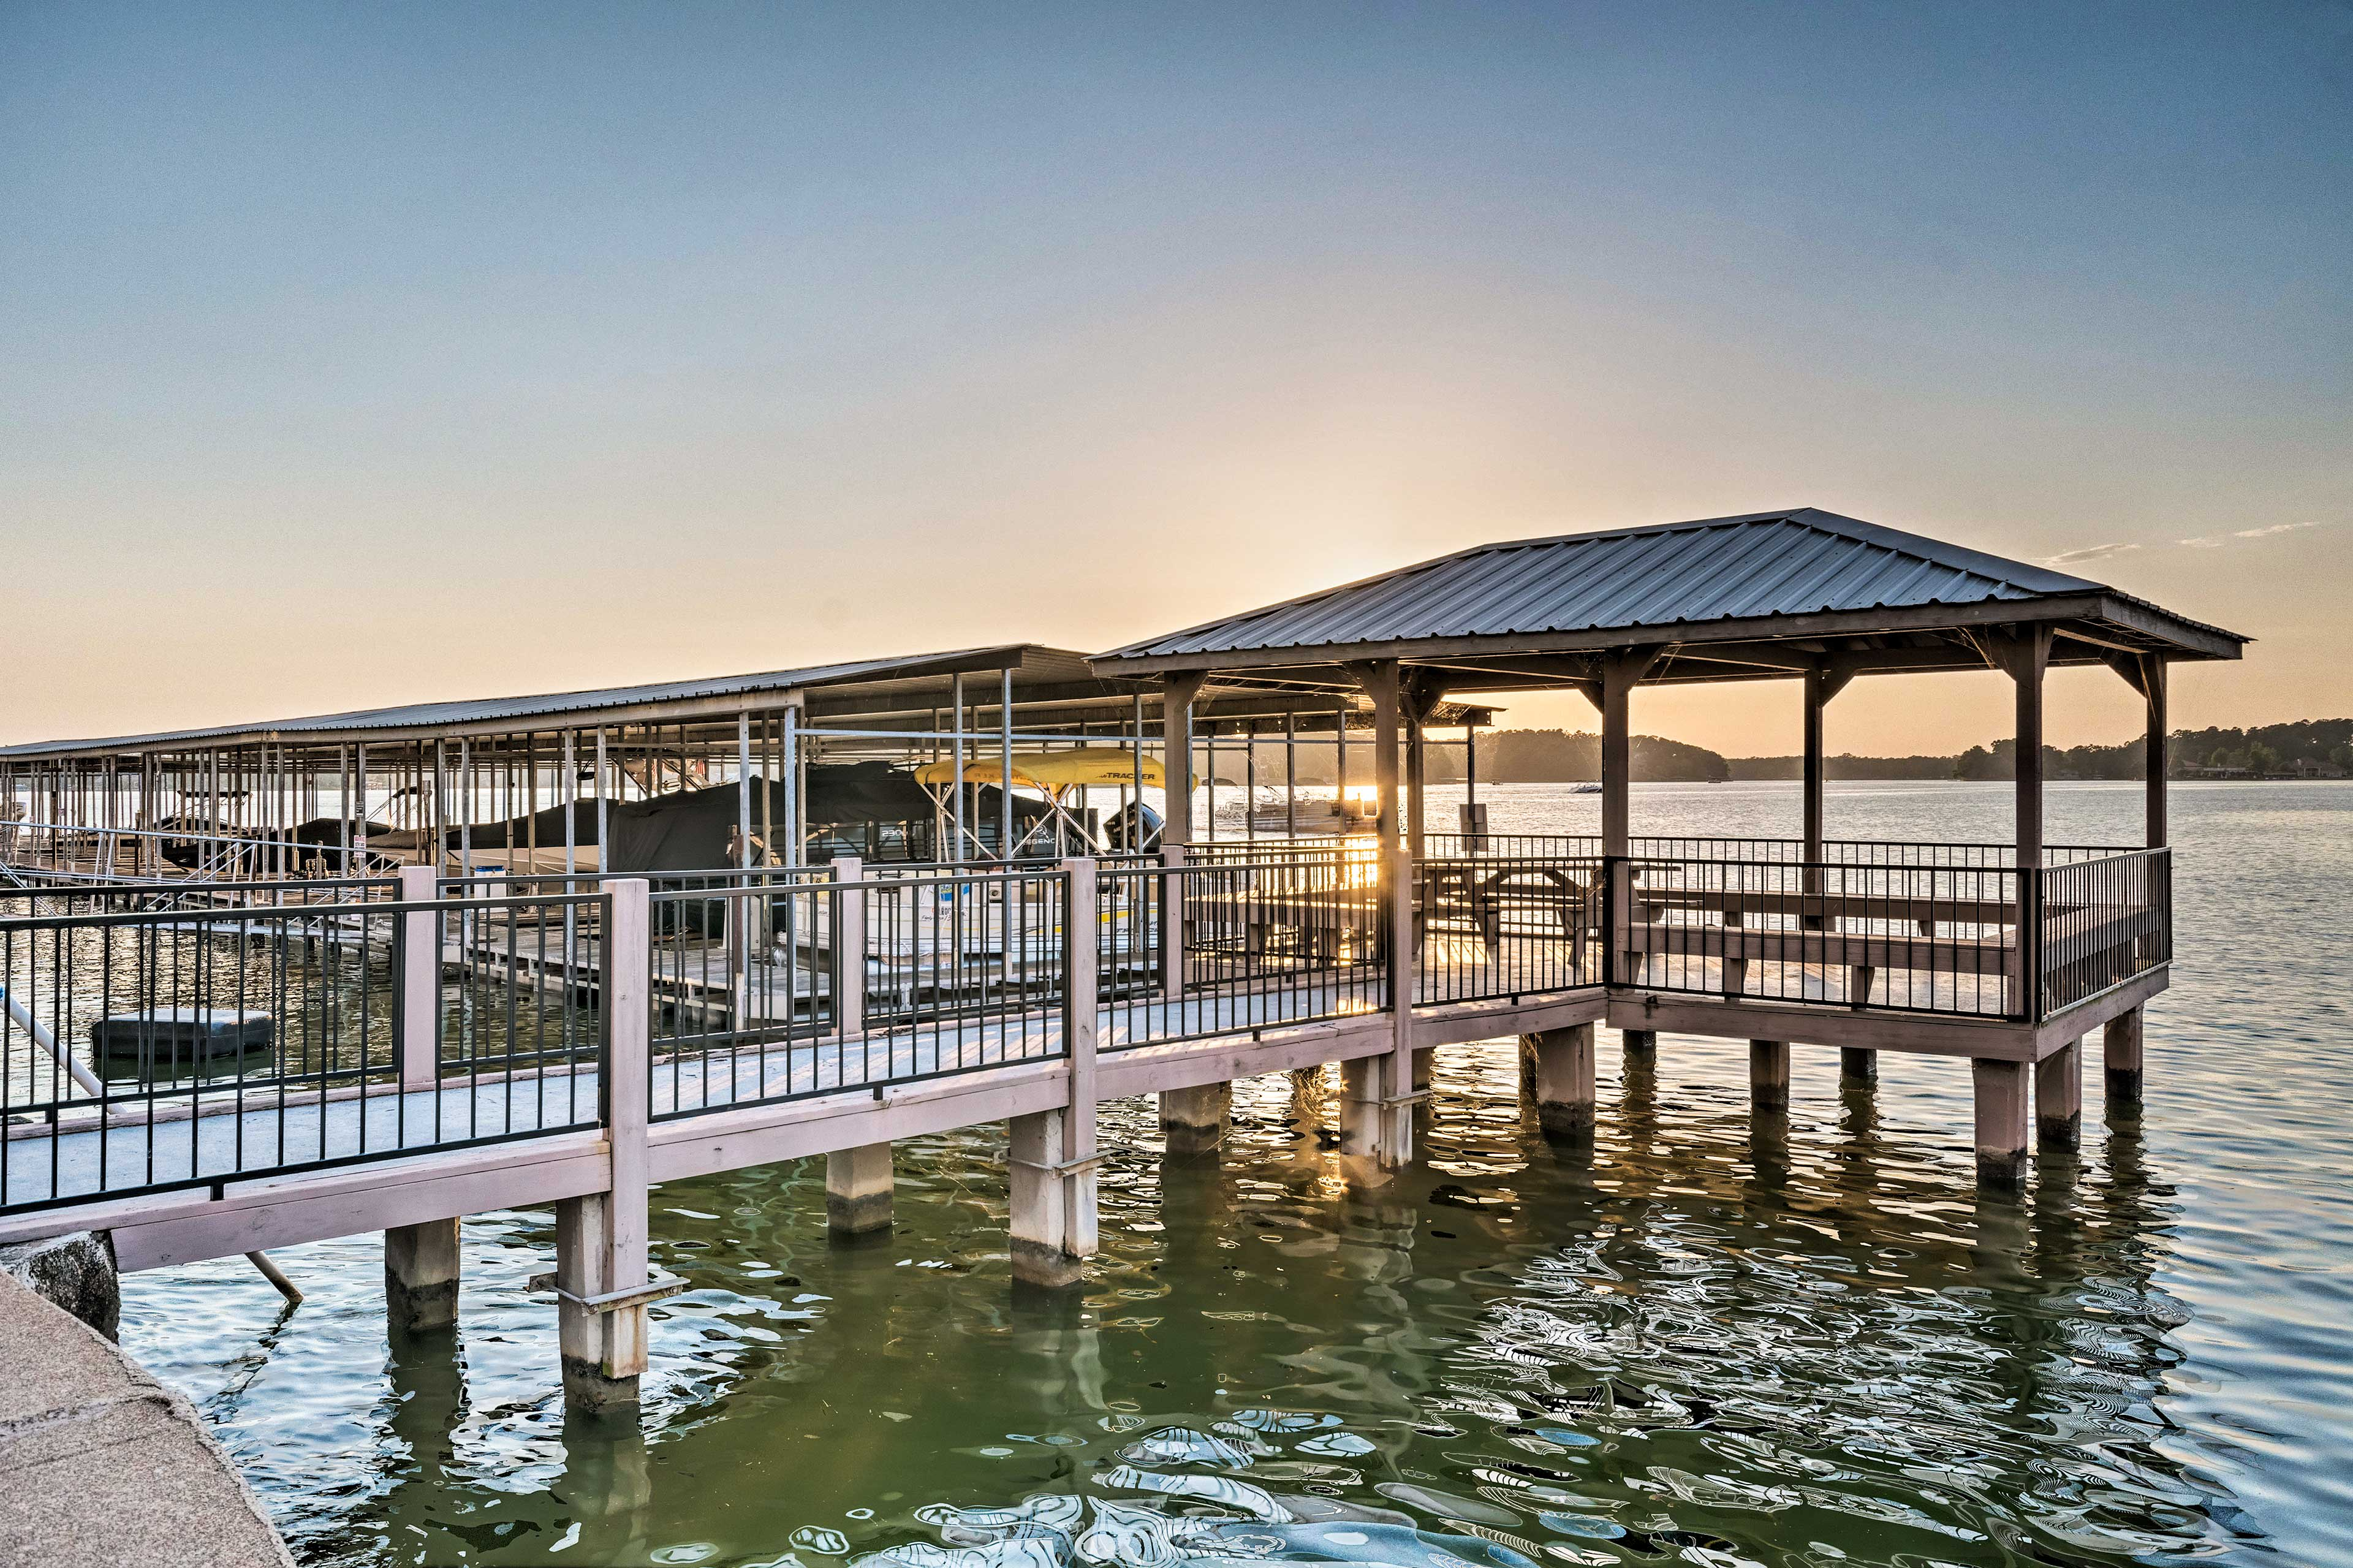 These lakefront vistas will not disappoint!